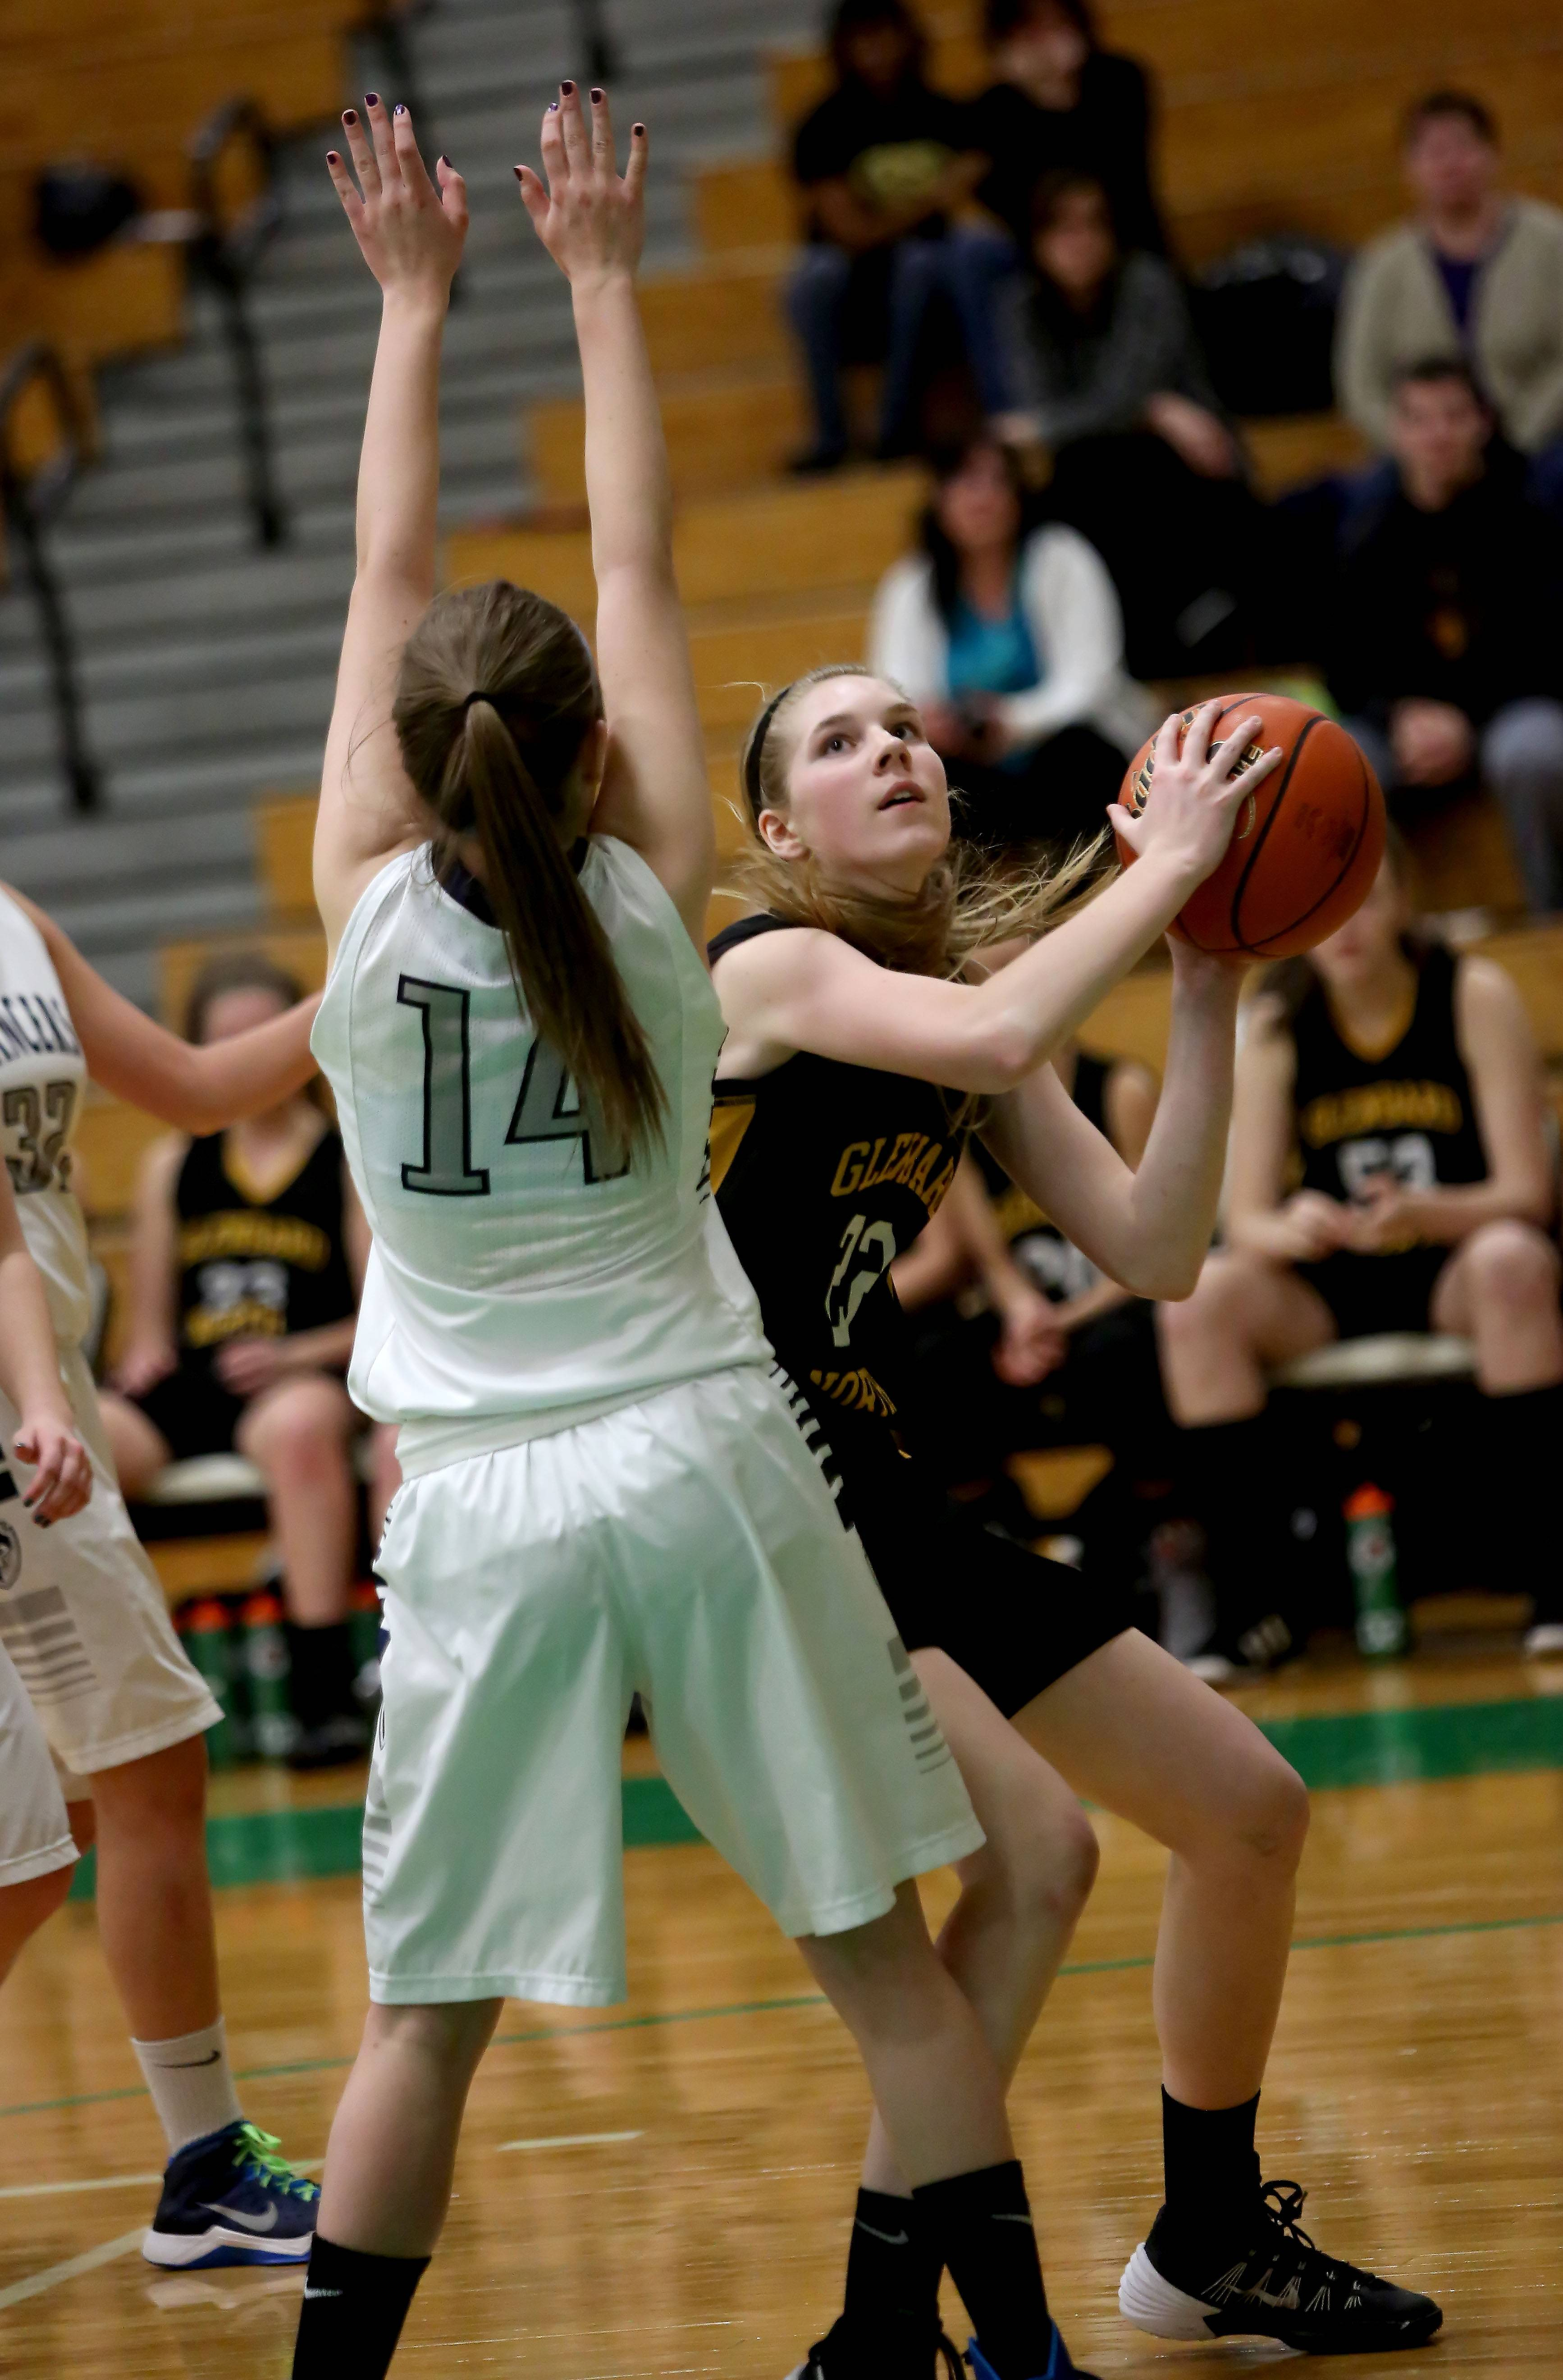 Jennifer Deegan of Glenbard North, right, looks to shoot against Lake Park in Class 4A regional quarterfinal girls basketball at York High School on Tuesday.